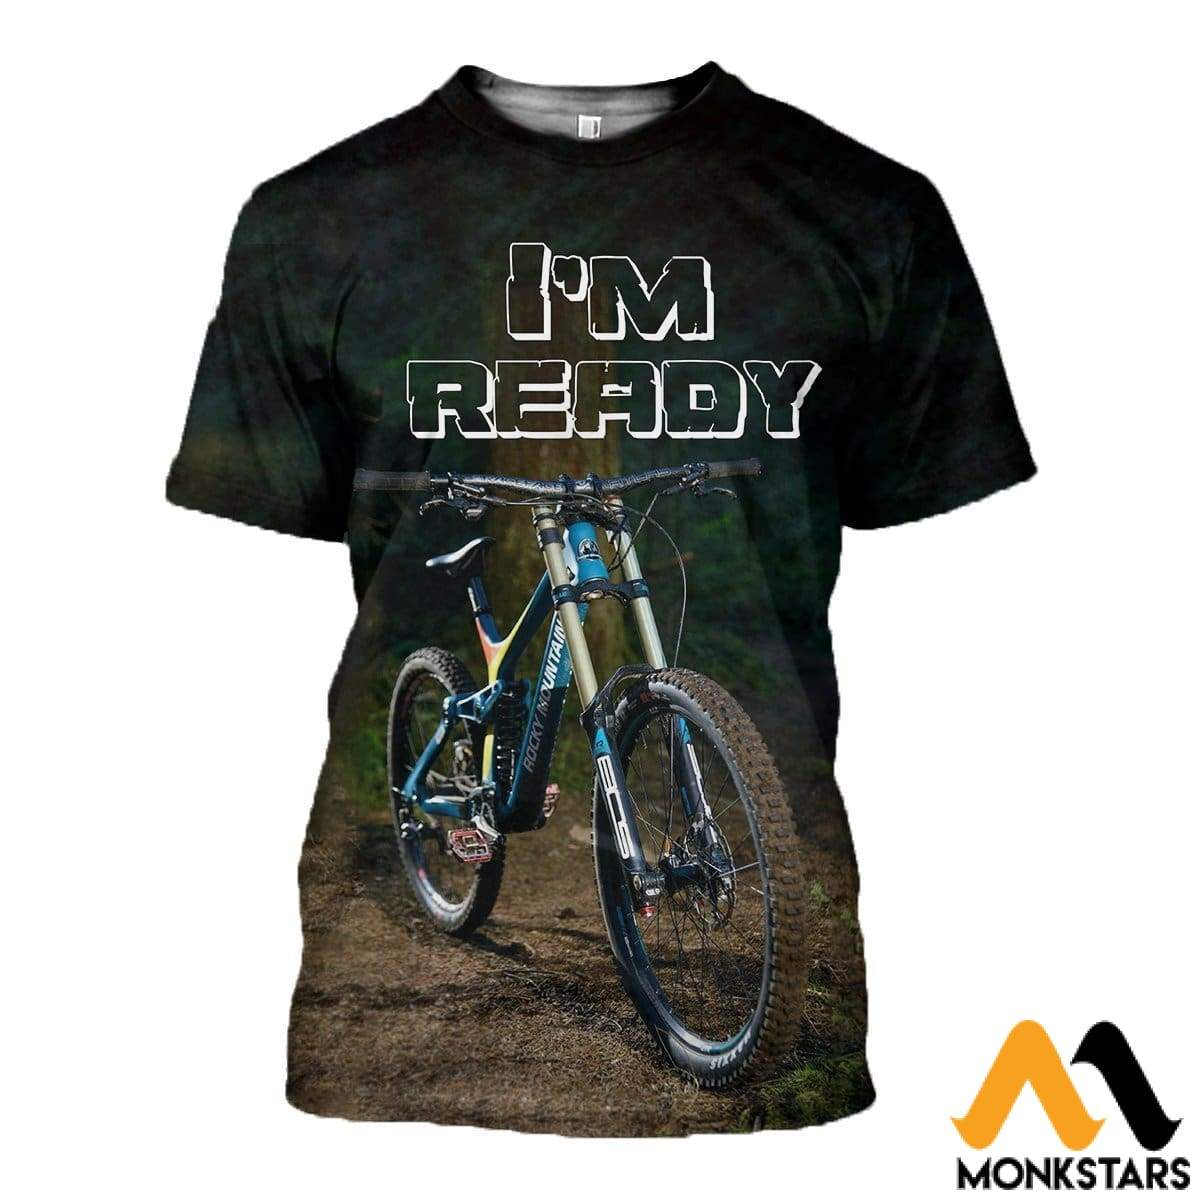 3D All Over Printed Perfect Bicycle T-Shirt Hoodie Sauk160409 / Xs Clothes